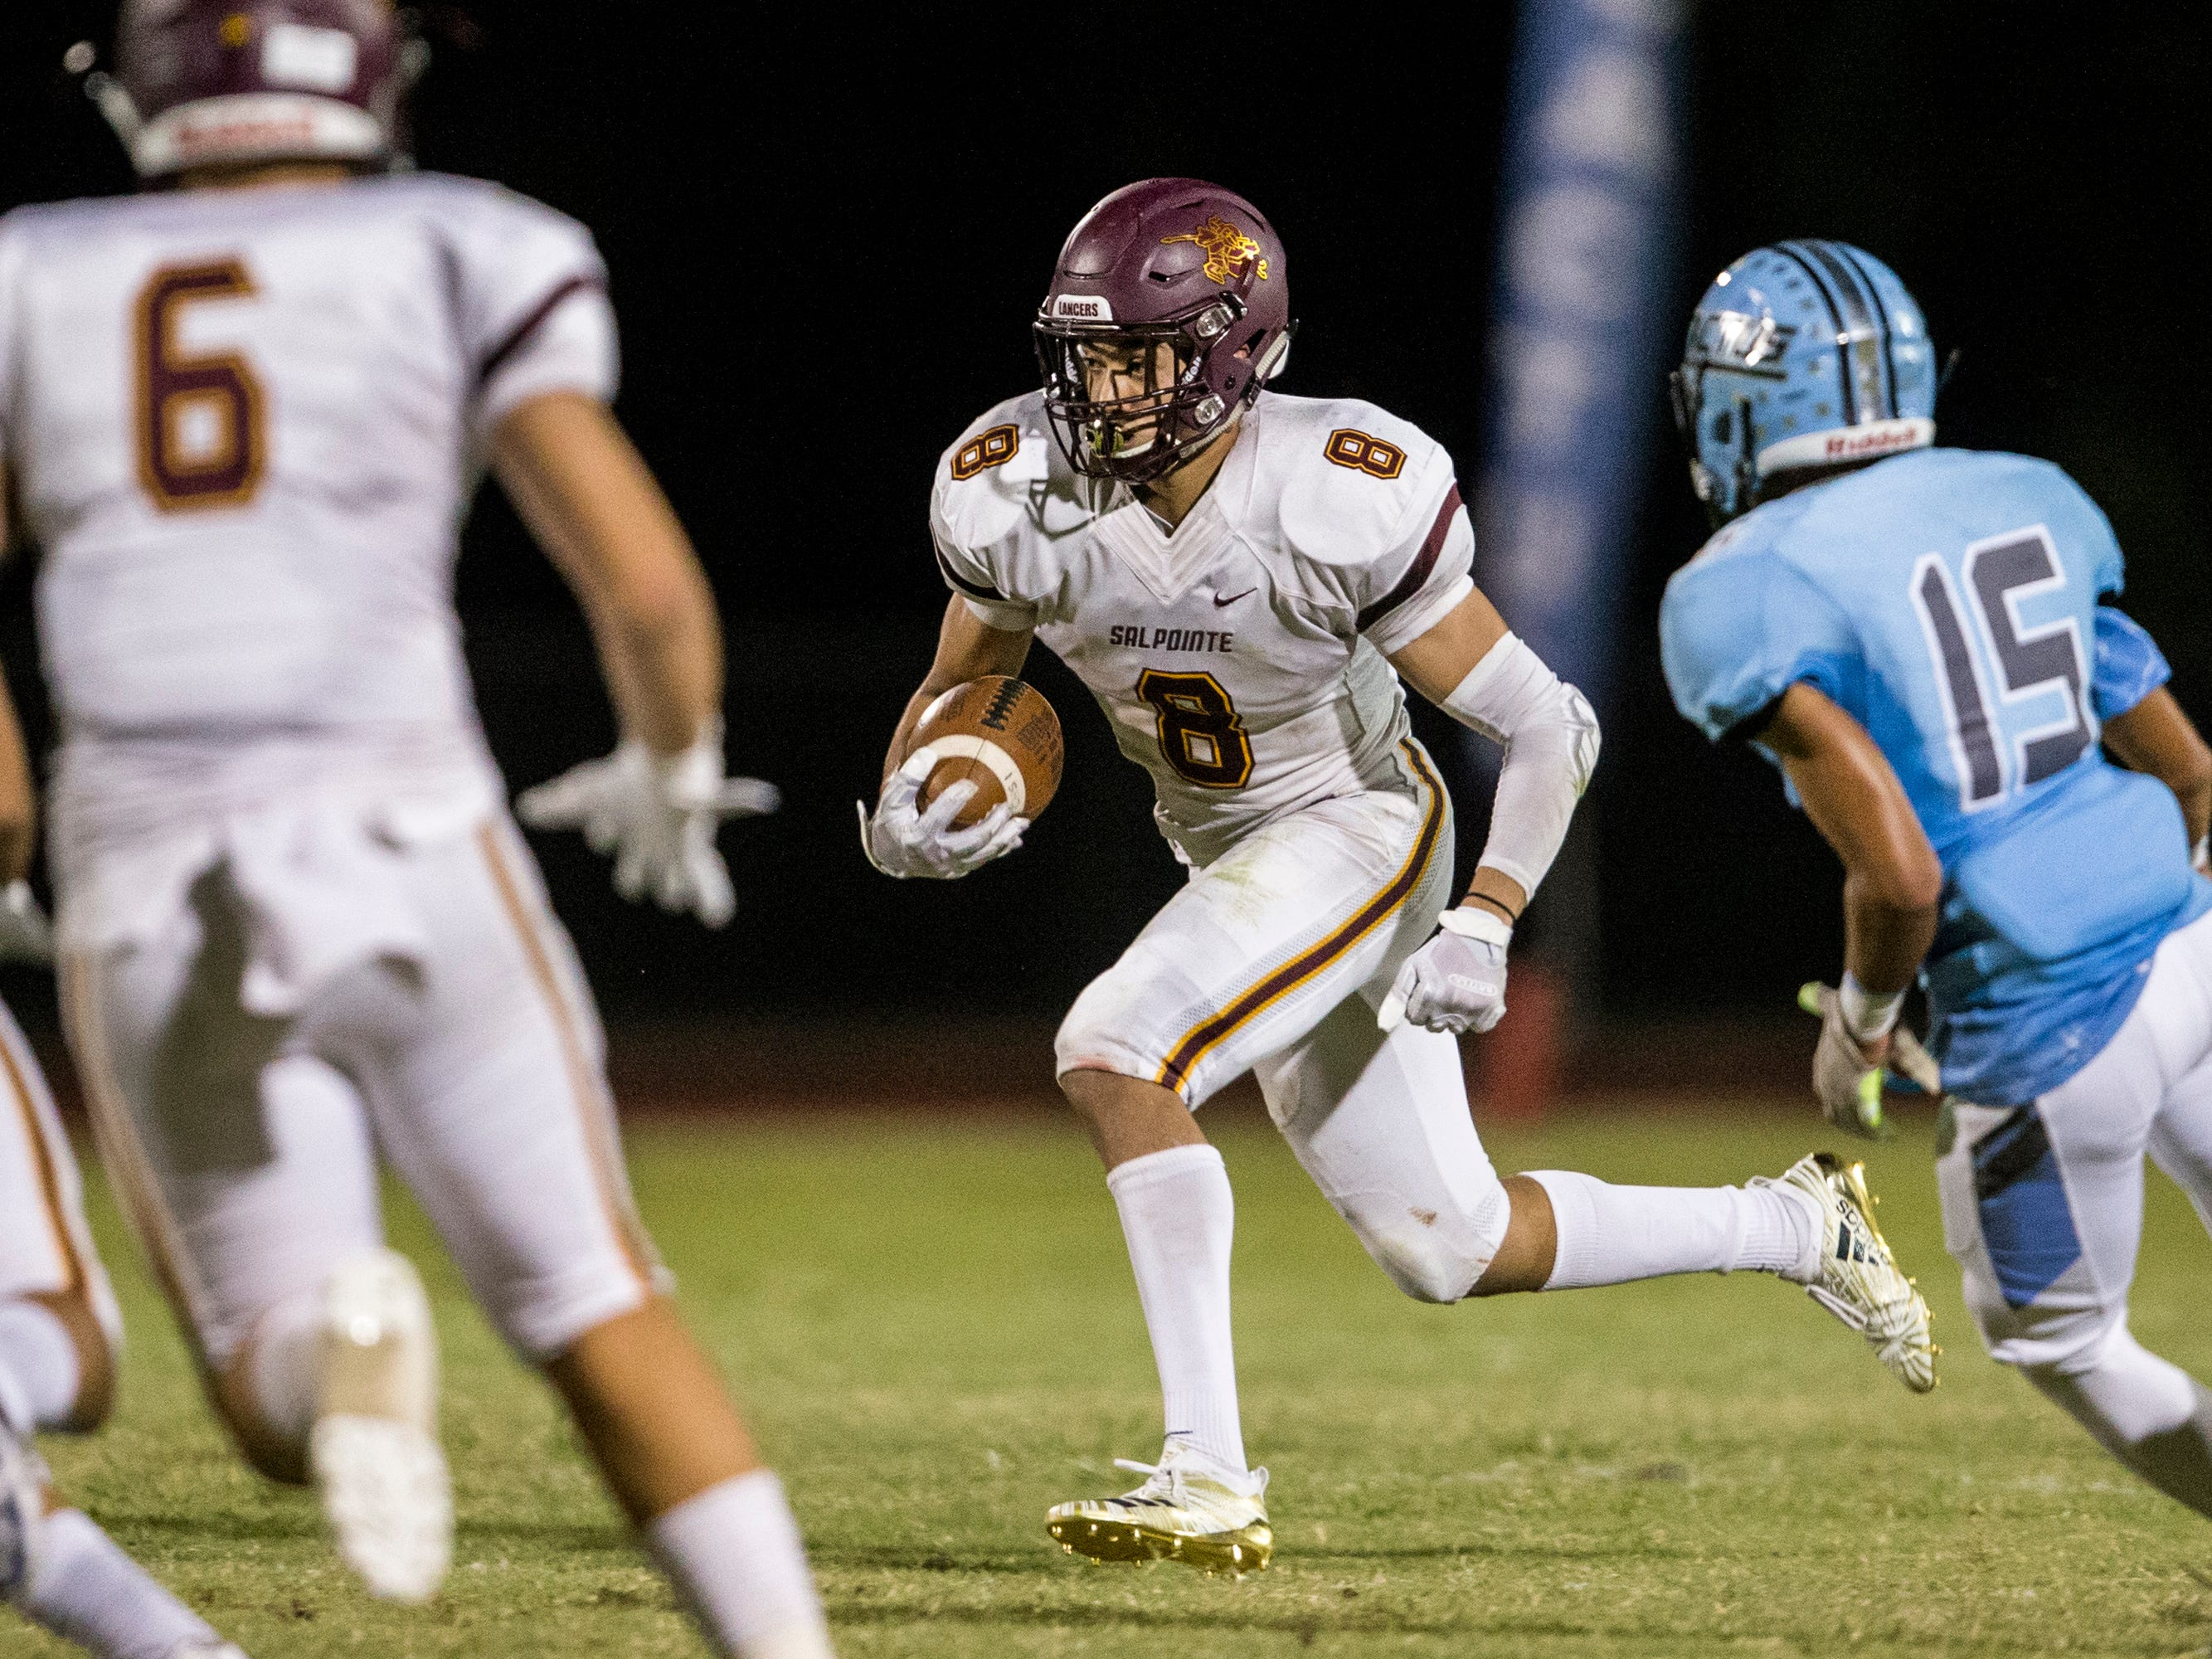 Salpointe's Lathan Ransom rushes against Cactus in the 2nd quarter on Friday, Sept. 14, 2018, at Cactus High School in Glendale, Ariz.